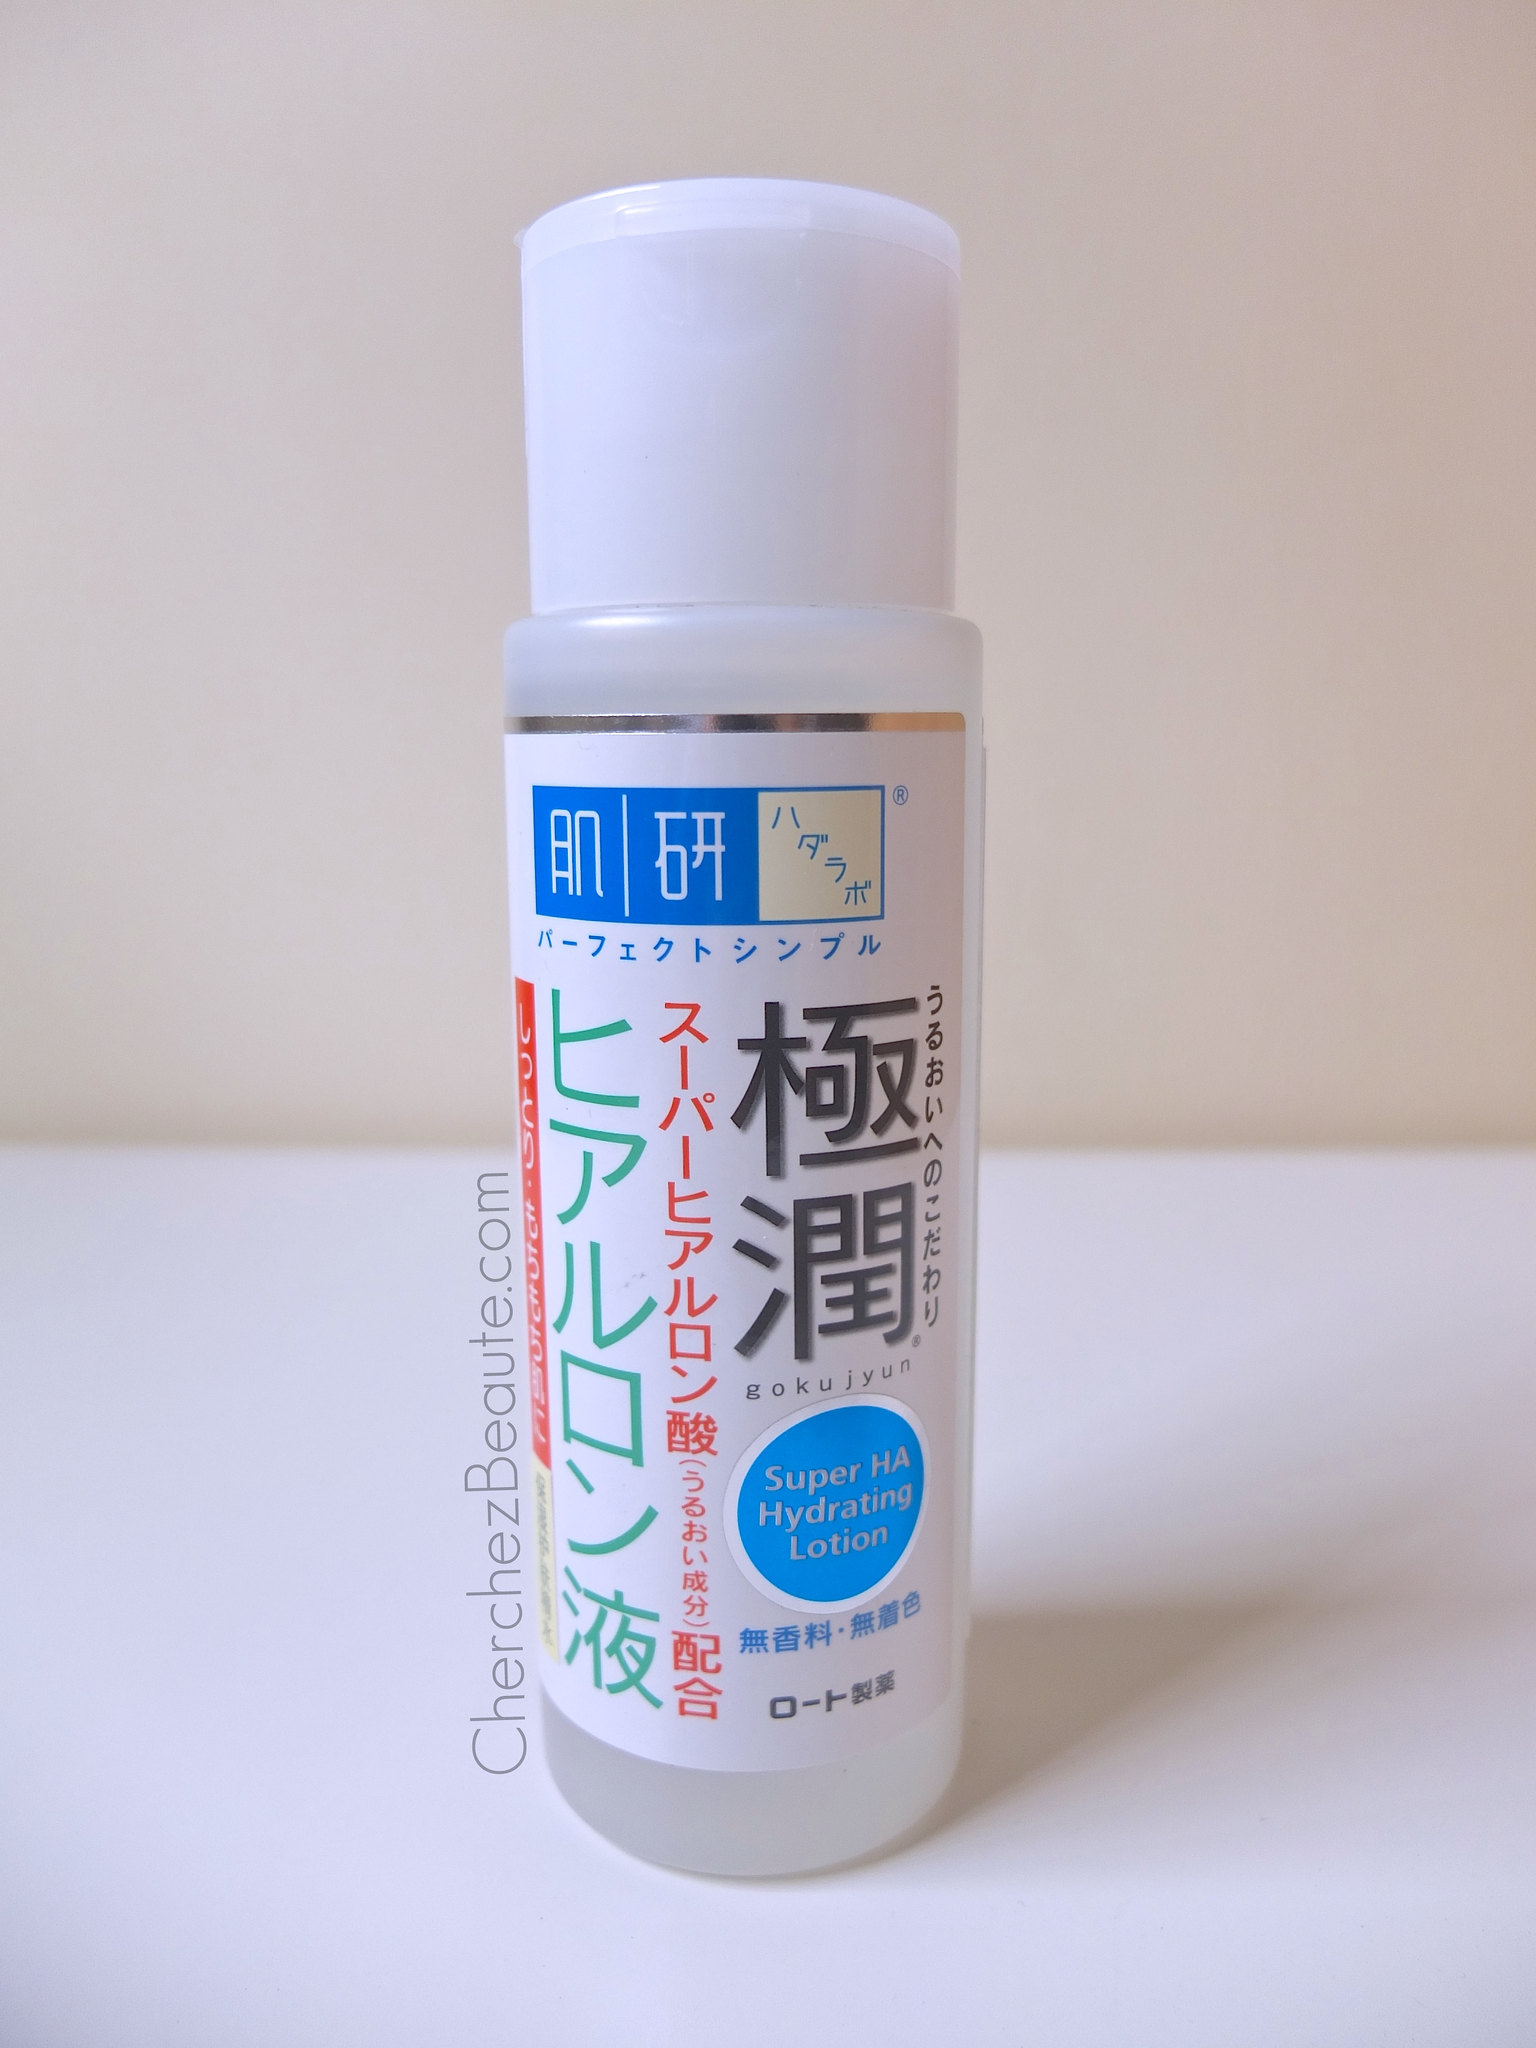 Hada Labo Super Hyaluronic Acid Hydrating Lotion